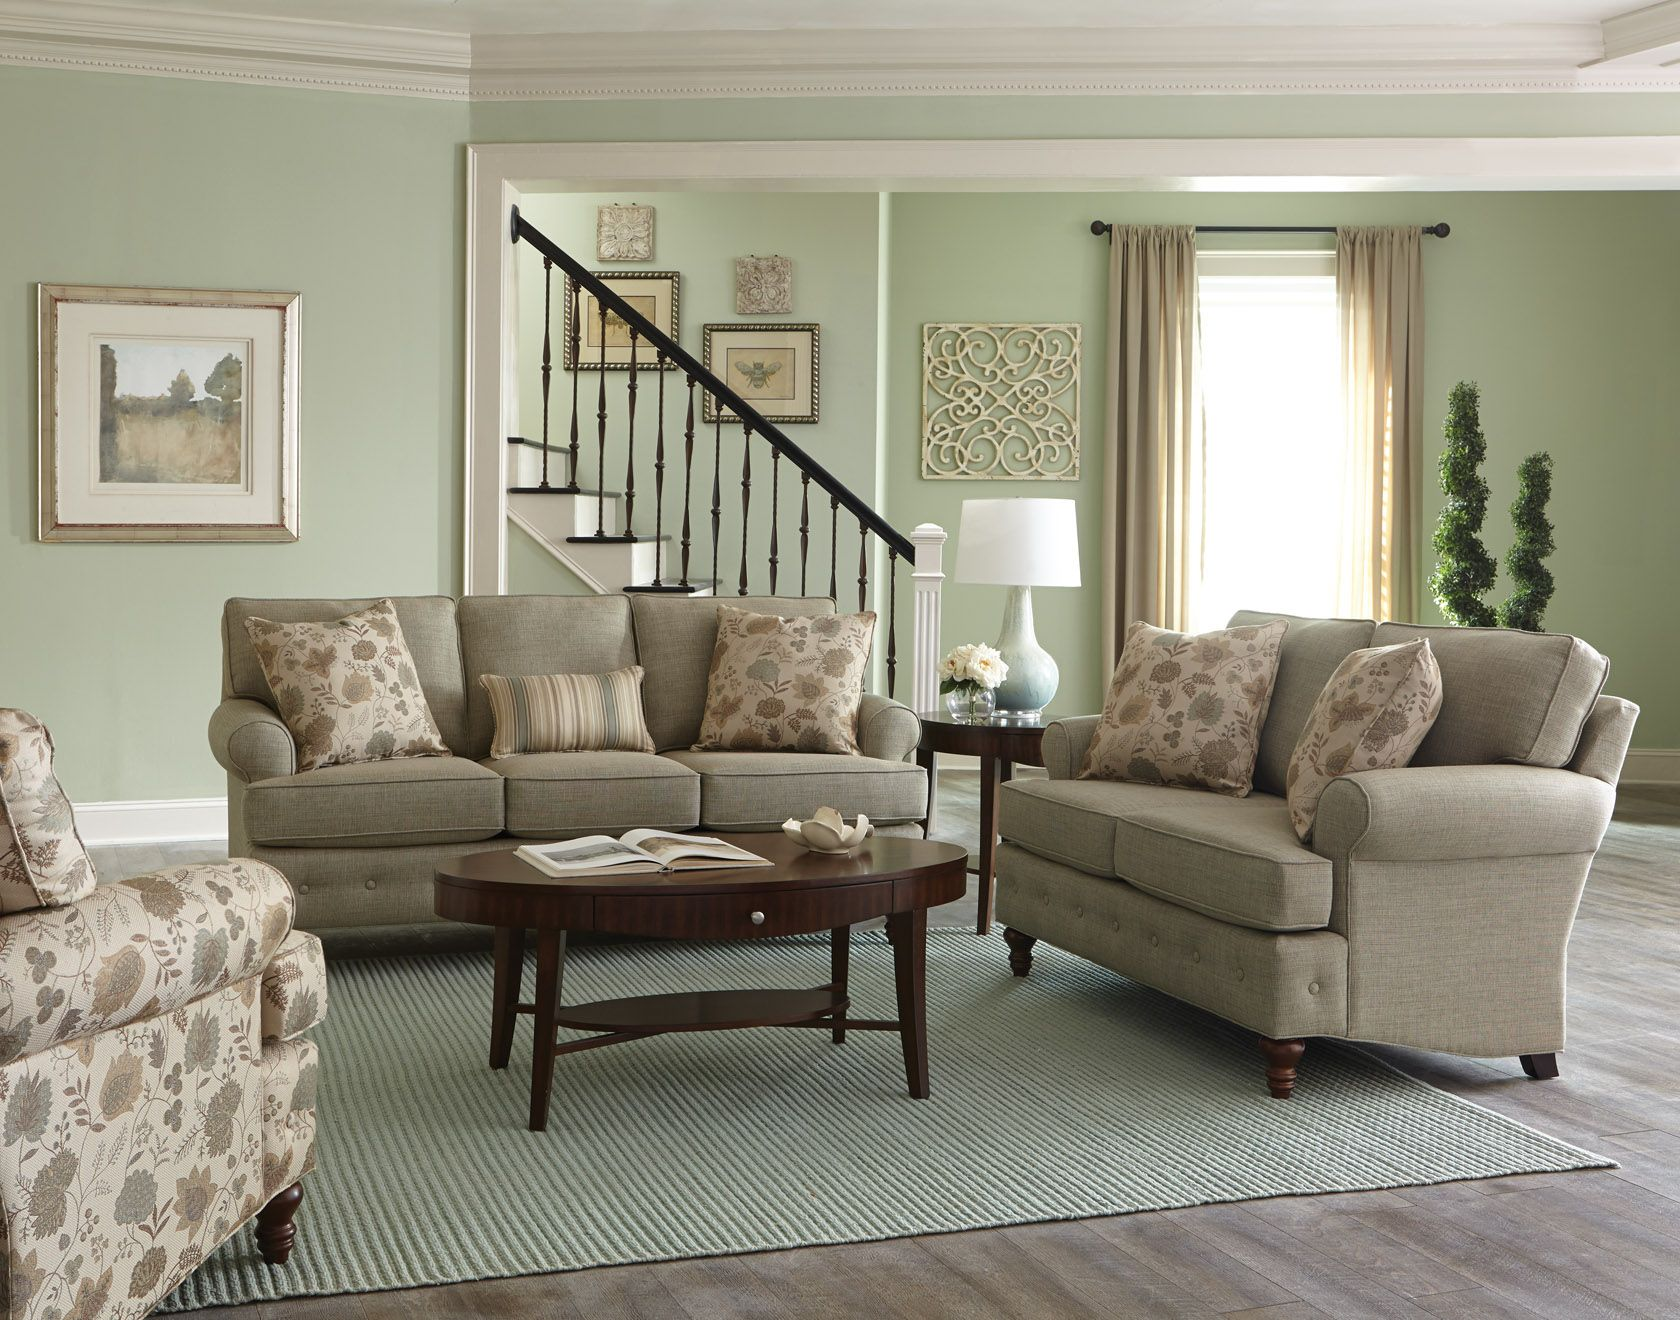 England Furniture 8480 With Toluca Sea Claire Wasabi And Composition Willow Fabrics